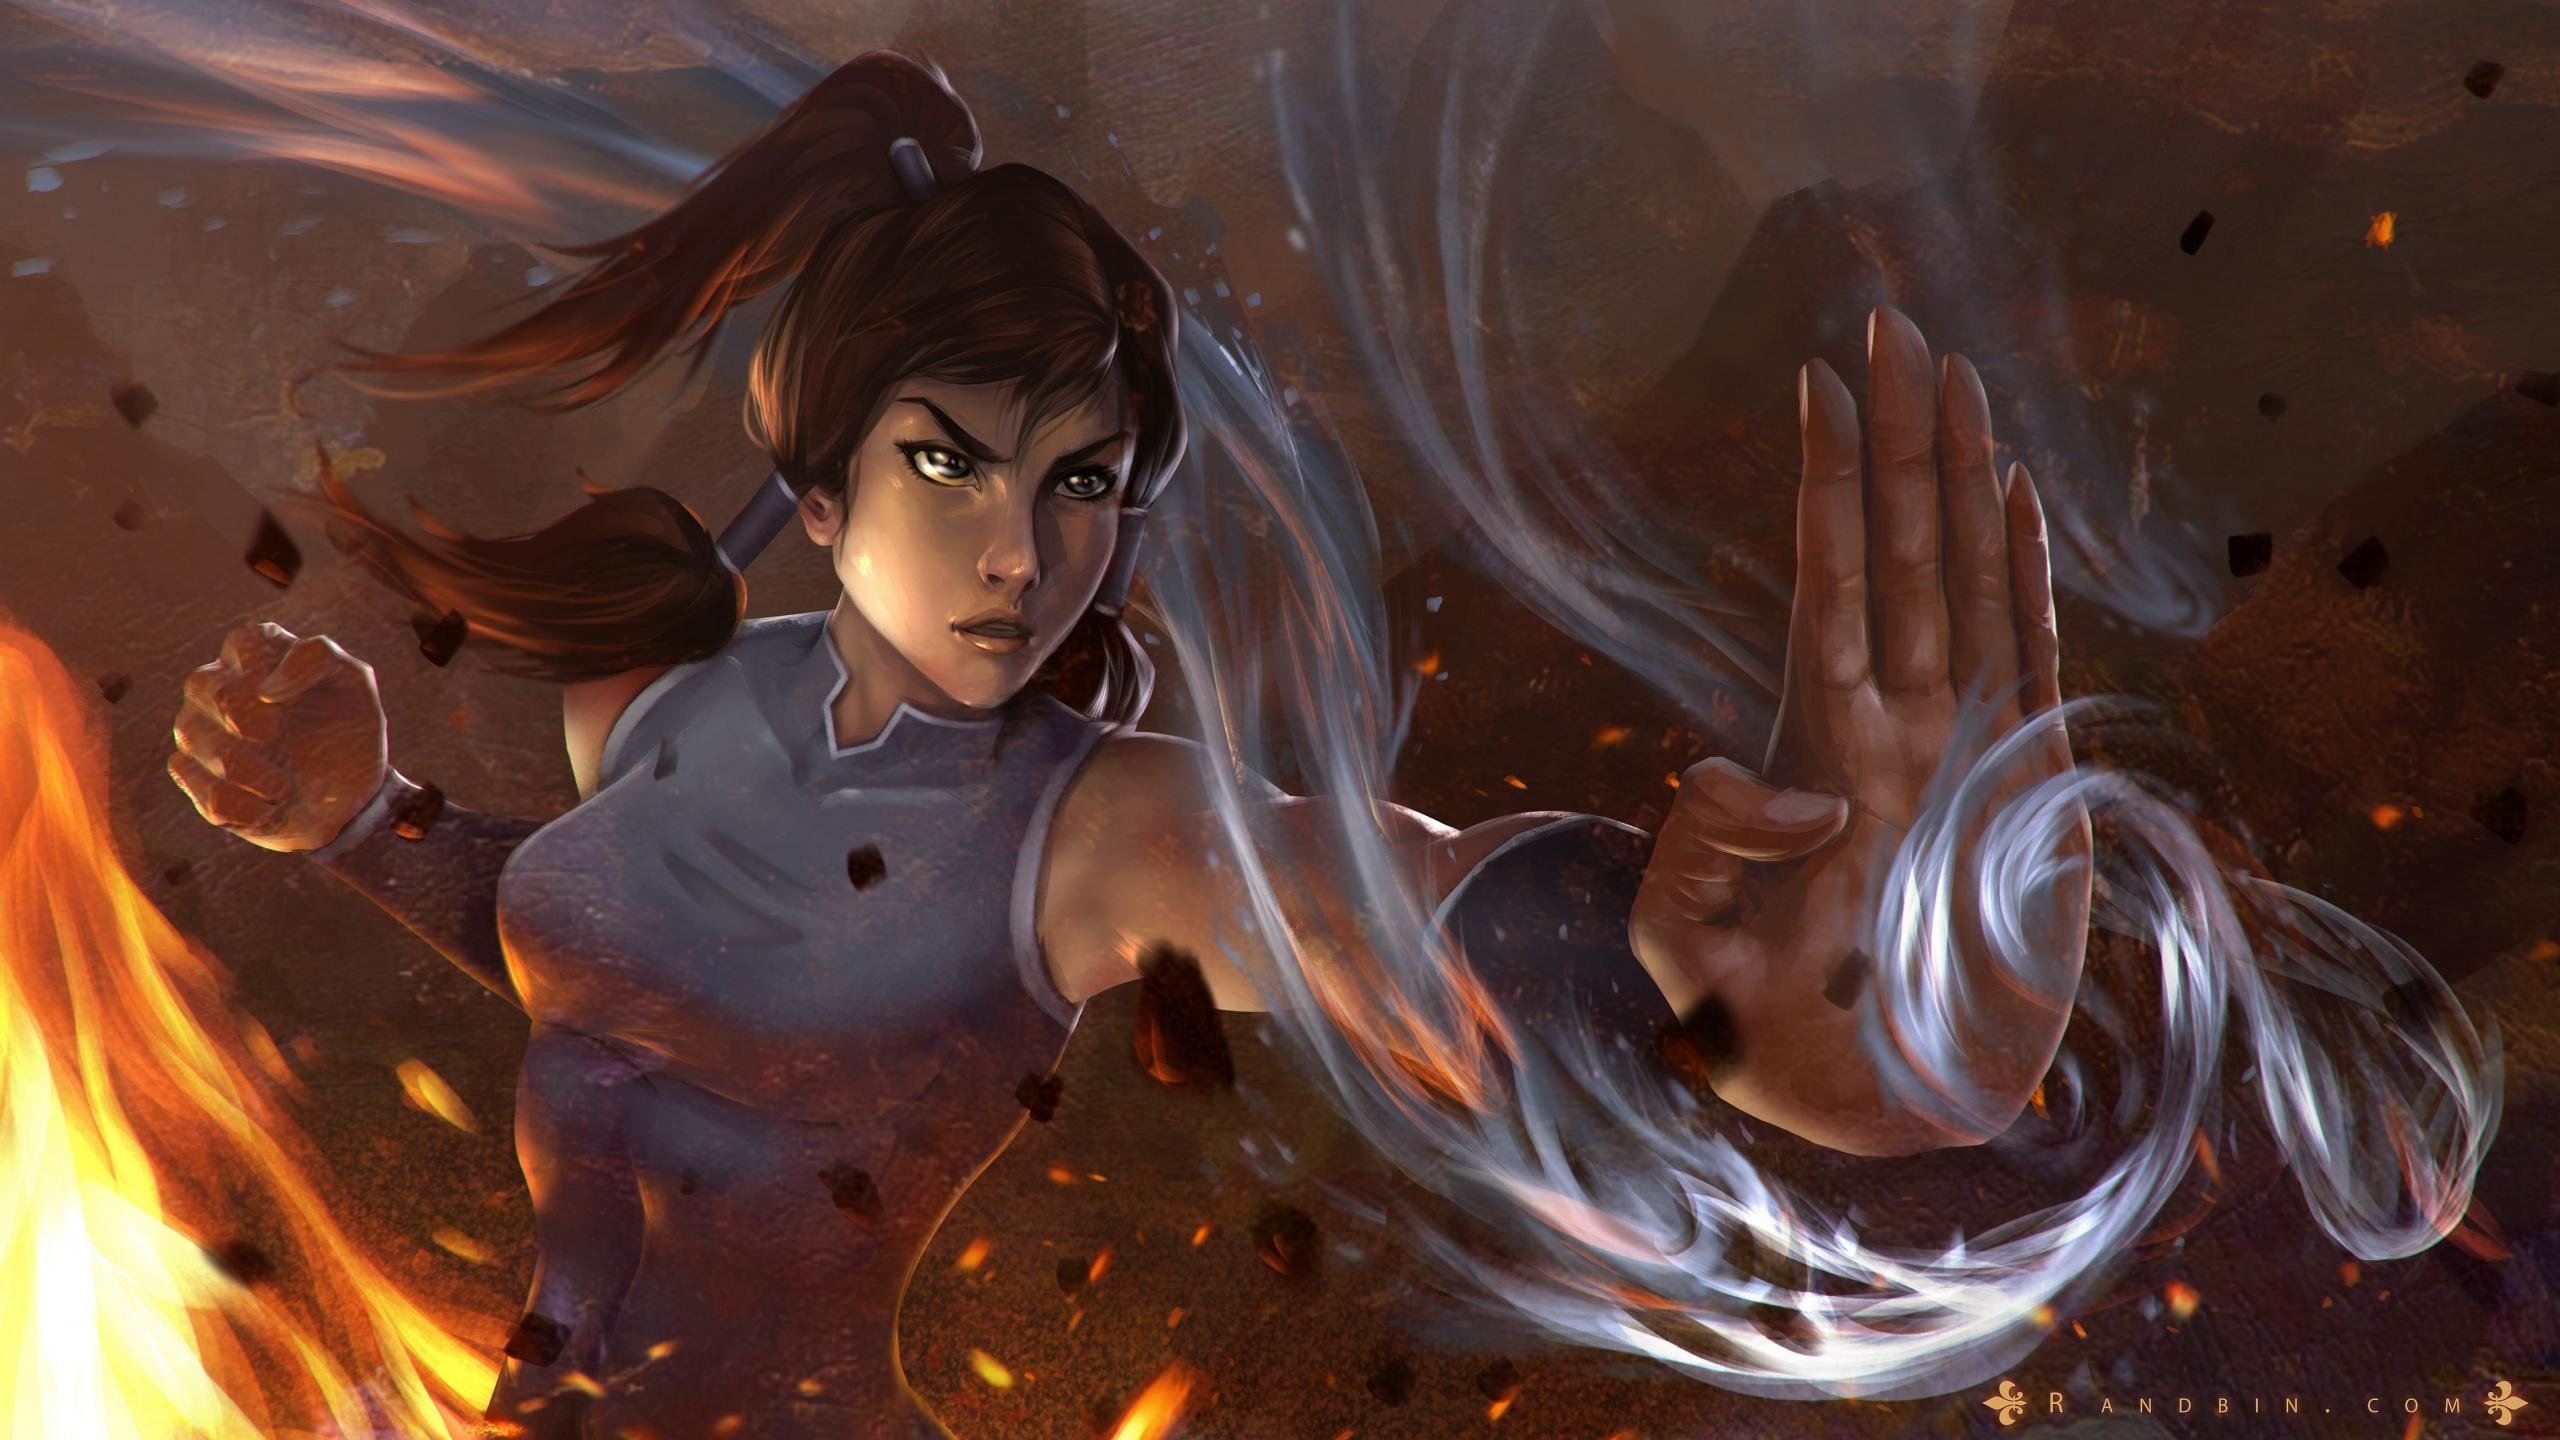 Free Avatar: The Legend Of Korra high quality wallpaper ID:243444 for hd 2560x1440 desktop